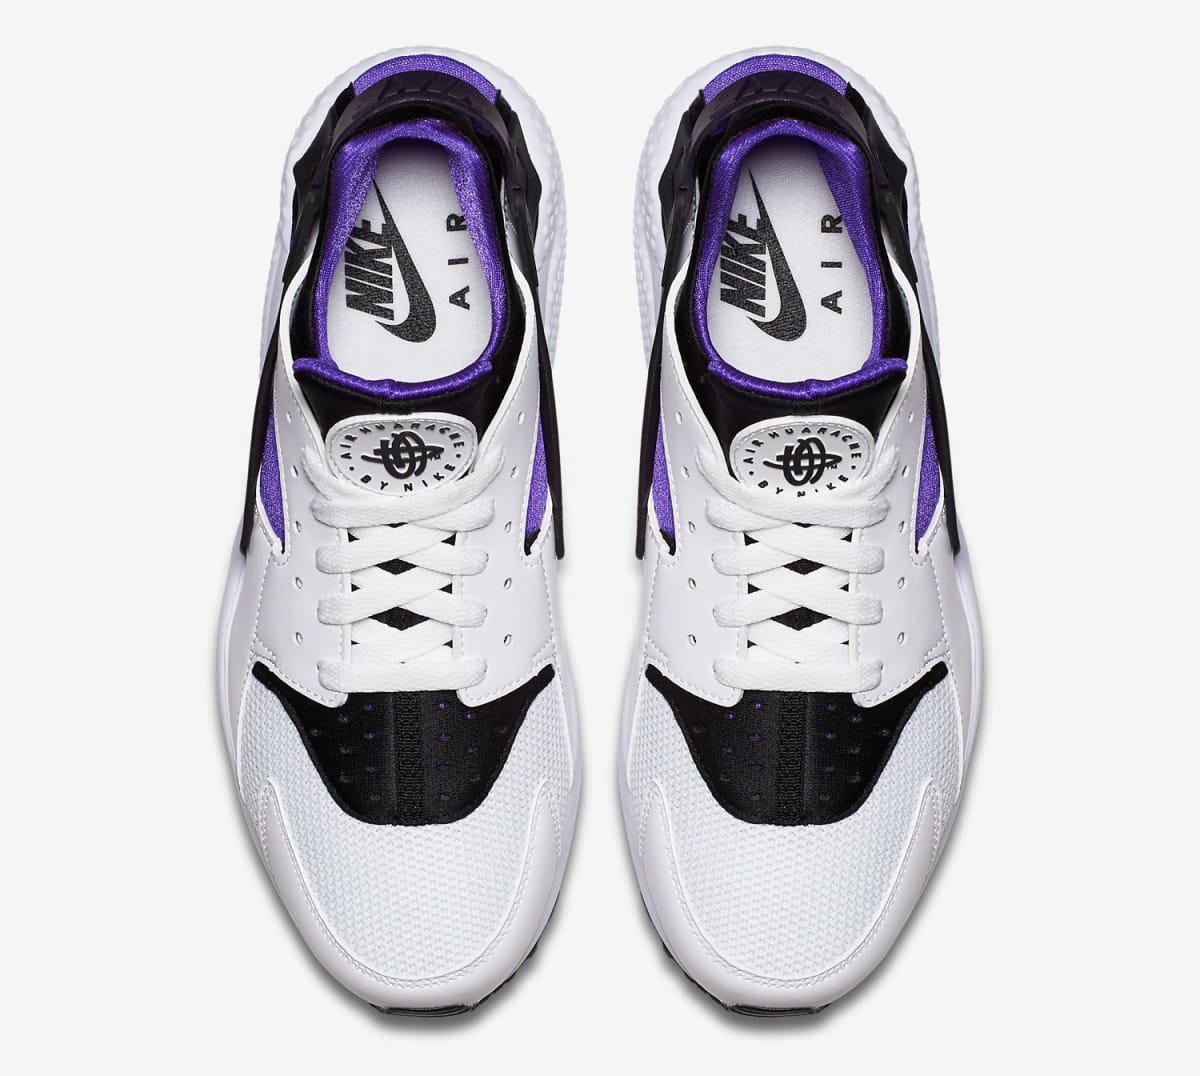 huge selection of a1aeb 12ff3 22ec6 a6fd3 switzerland nike air huarache purple punch sole collector  4b4bb 3c9fb